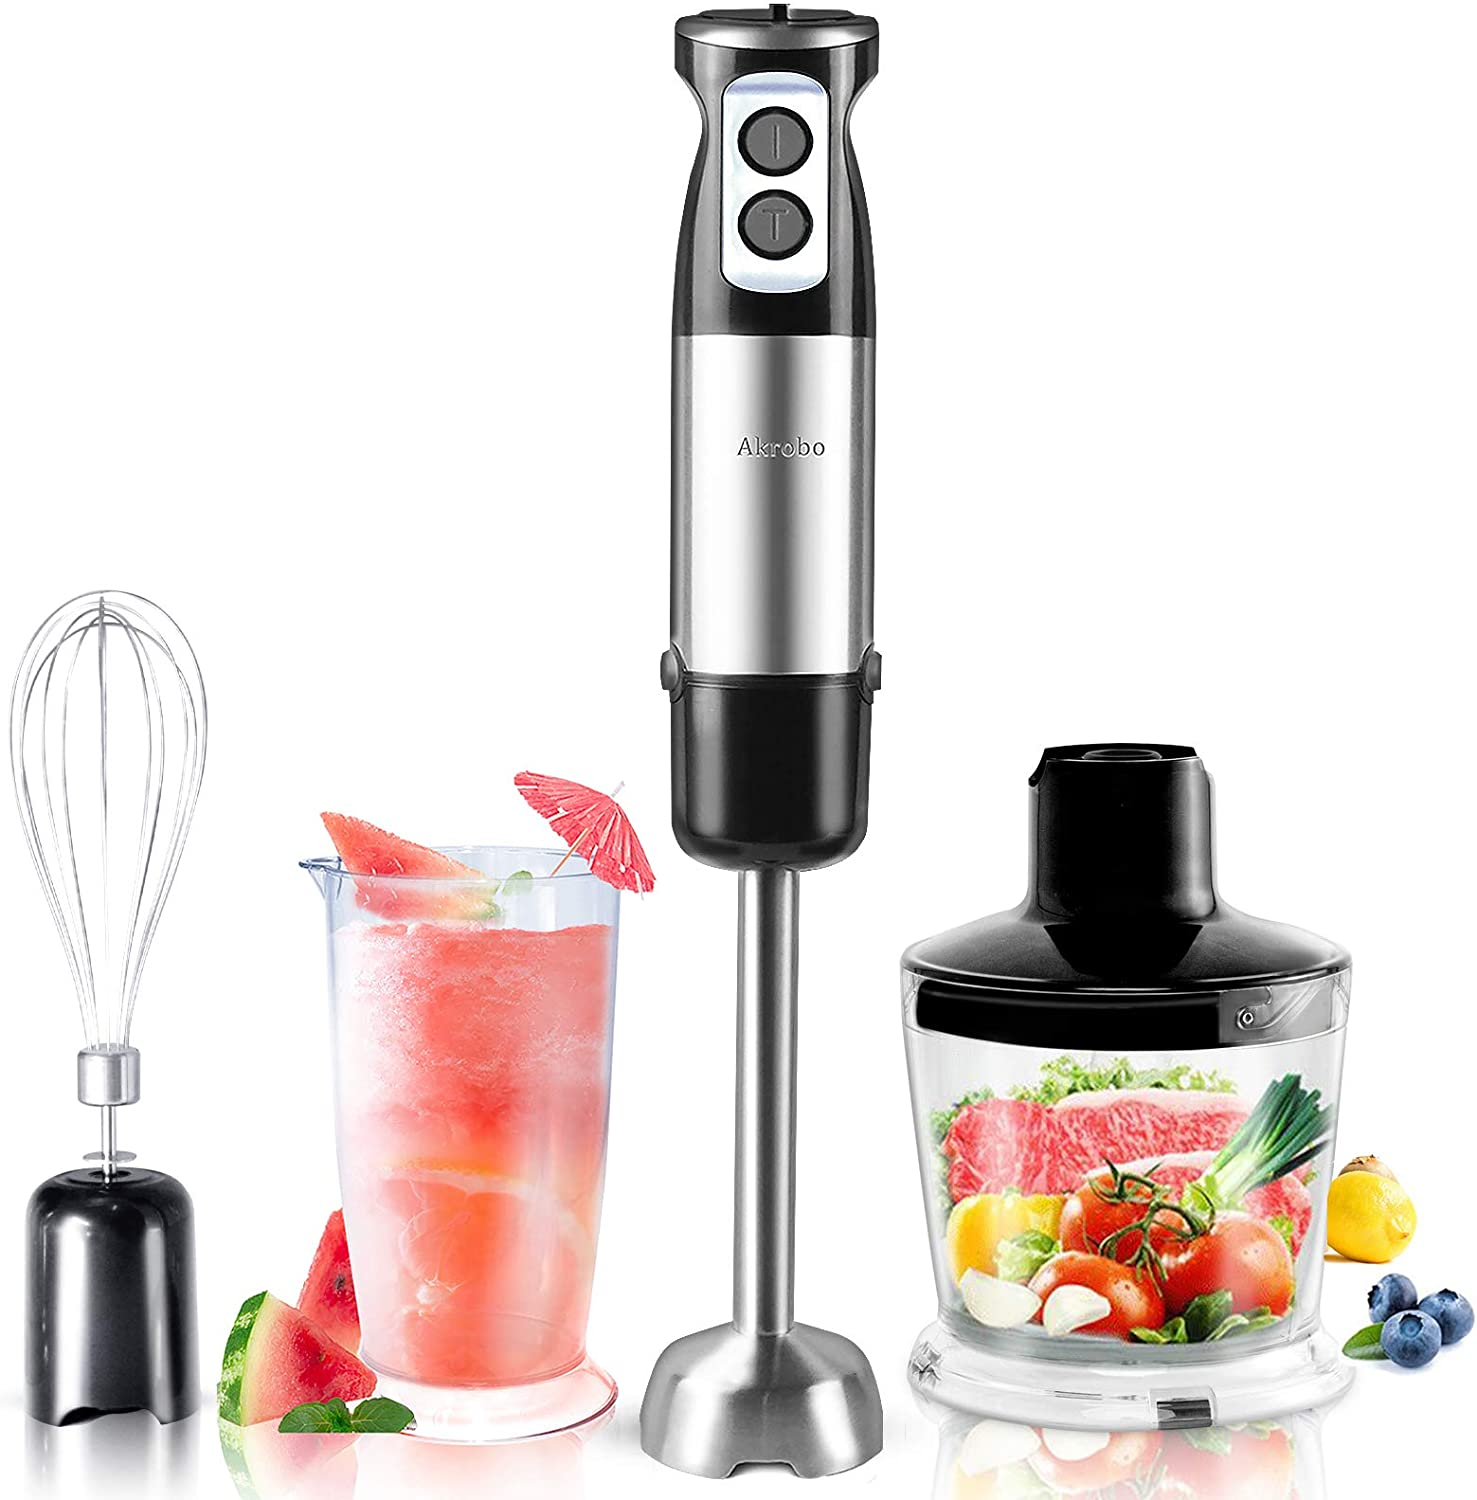 Akrobo 600W 6 Speed Immersion Hand Blender Handheld Electric 4-IN-1,304 Stainless Stick Blender with Whisk,Chopper,Measuring Cup,Used to Make Puree Infant Food, Smoothies, Sauces and Soups-Thanksgiving Christmas Day Dinner Party Cooking Assistant